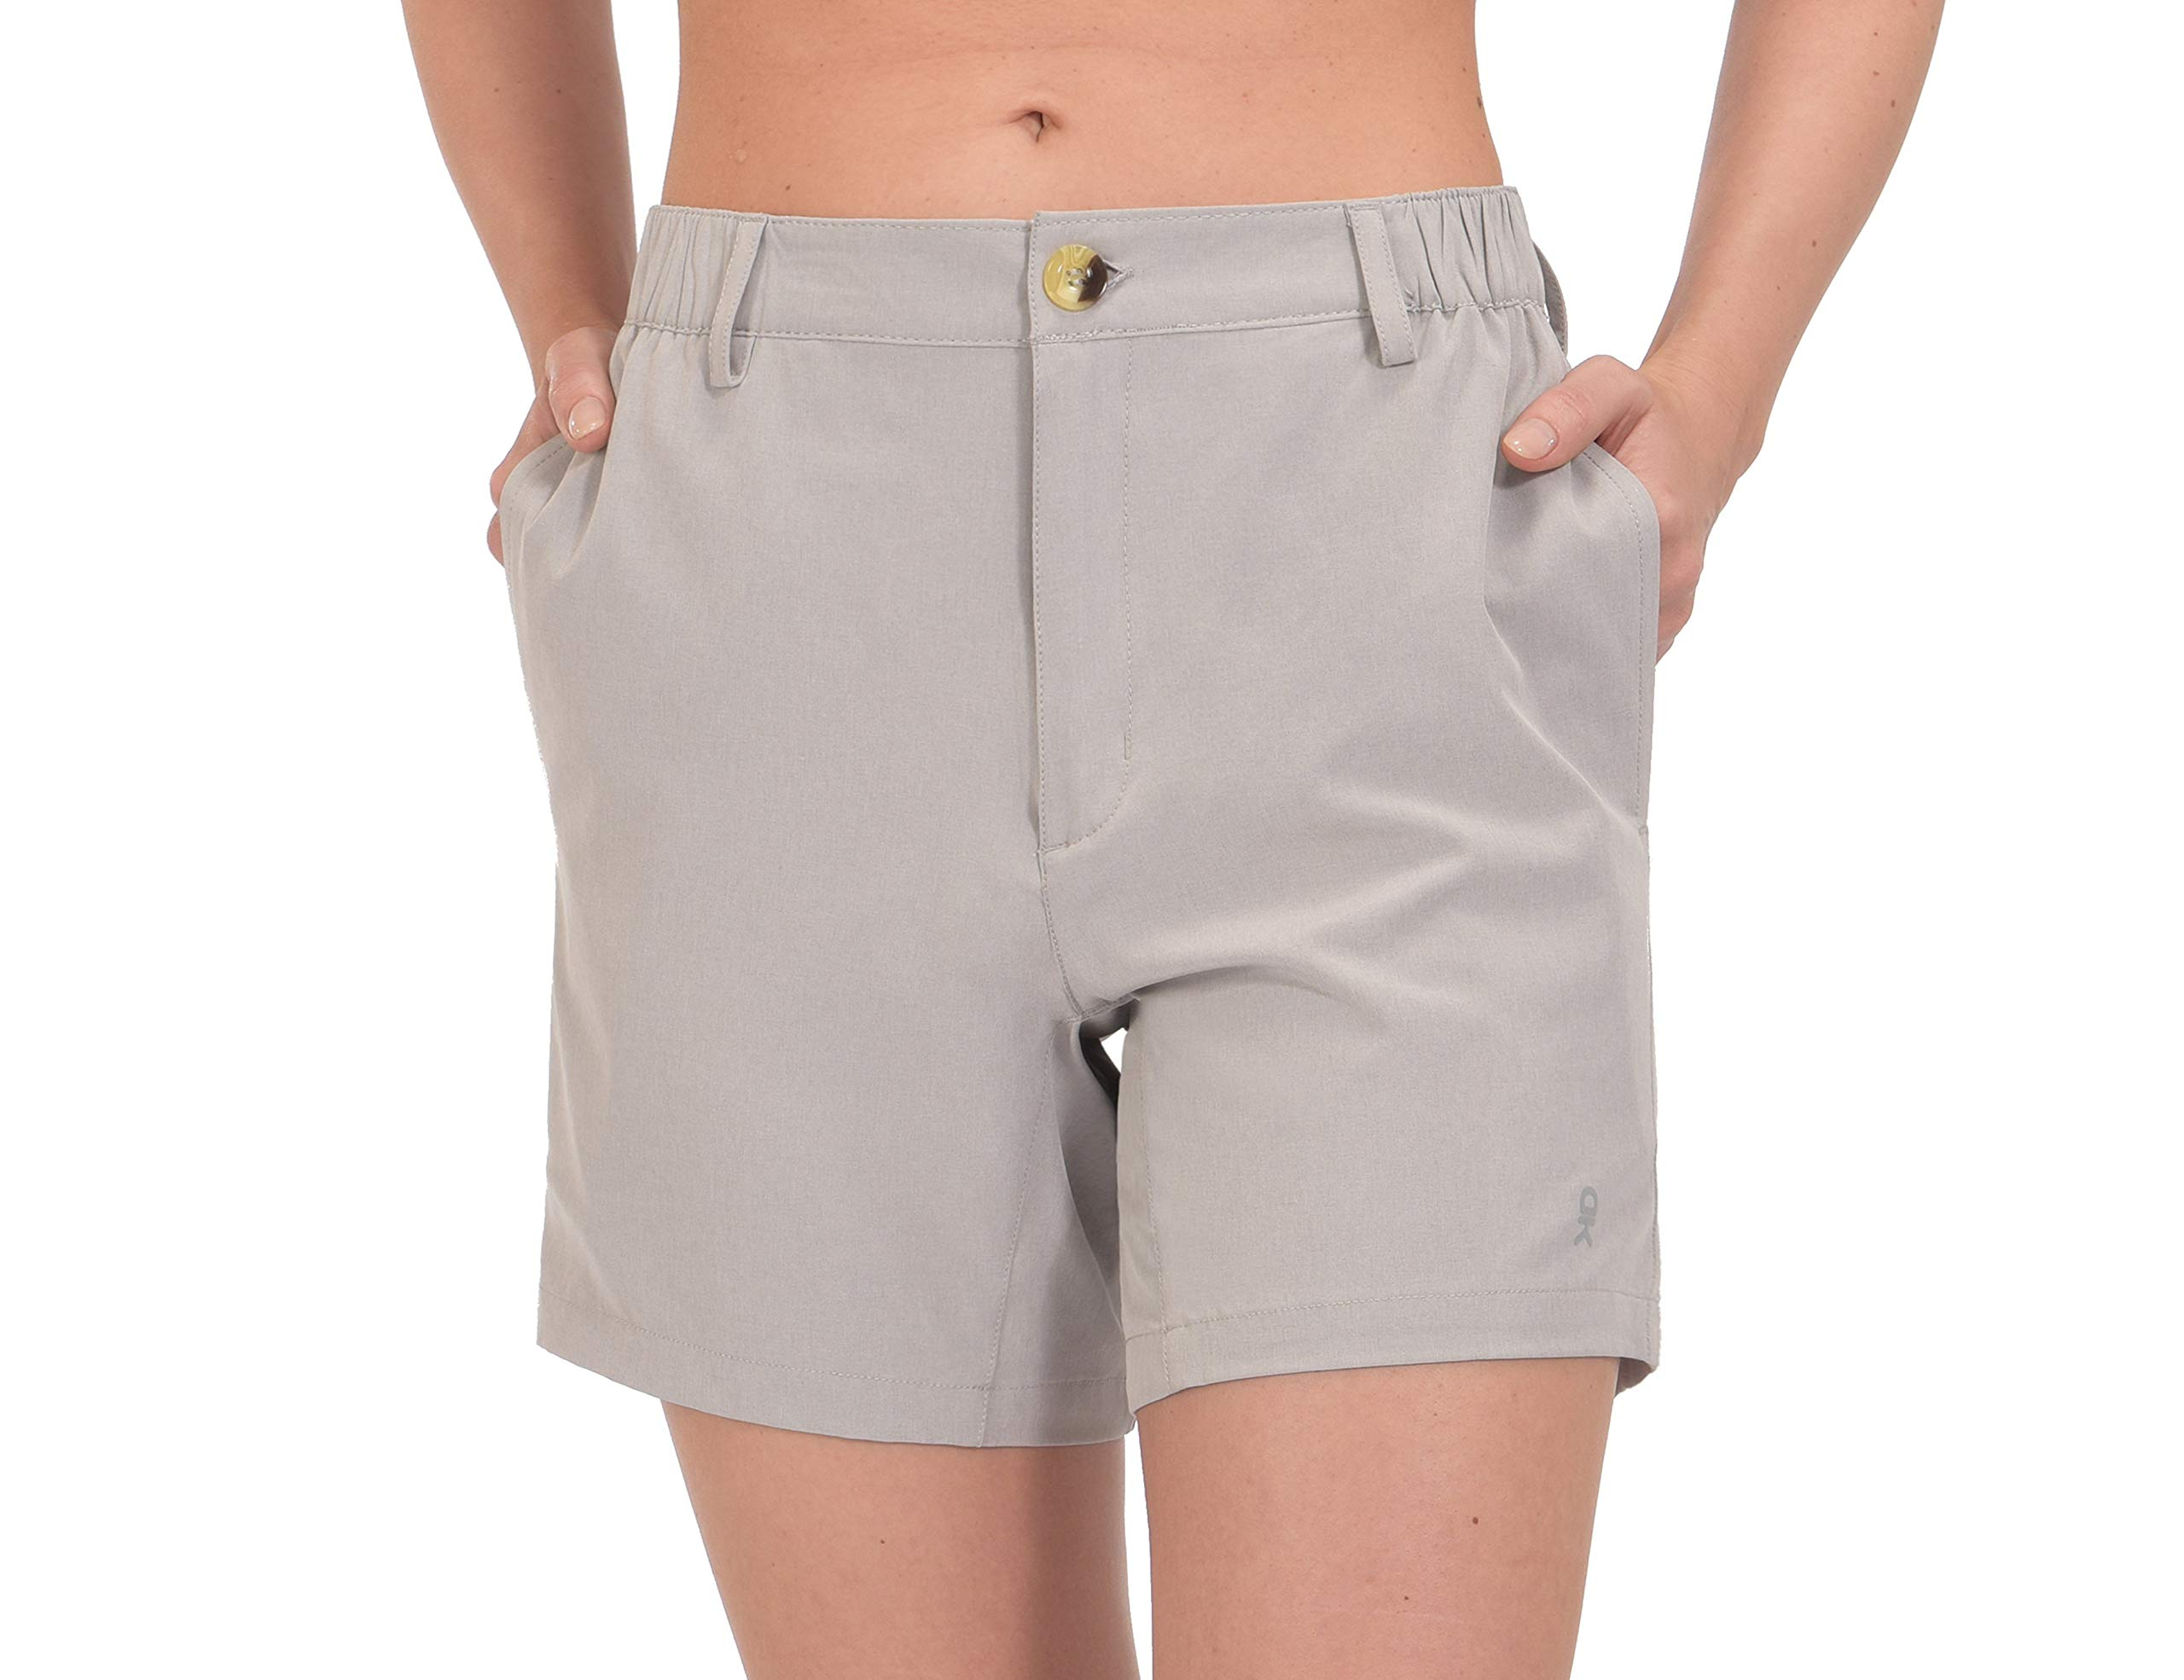 Little Donkey Andy Women's Lightweight Quick Dry Bermuda Shorts UPF 50 Stretch Shorts for Golf Hiking Travelling